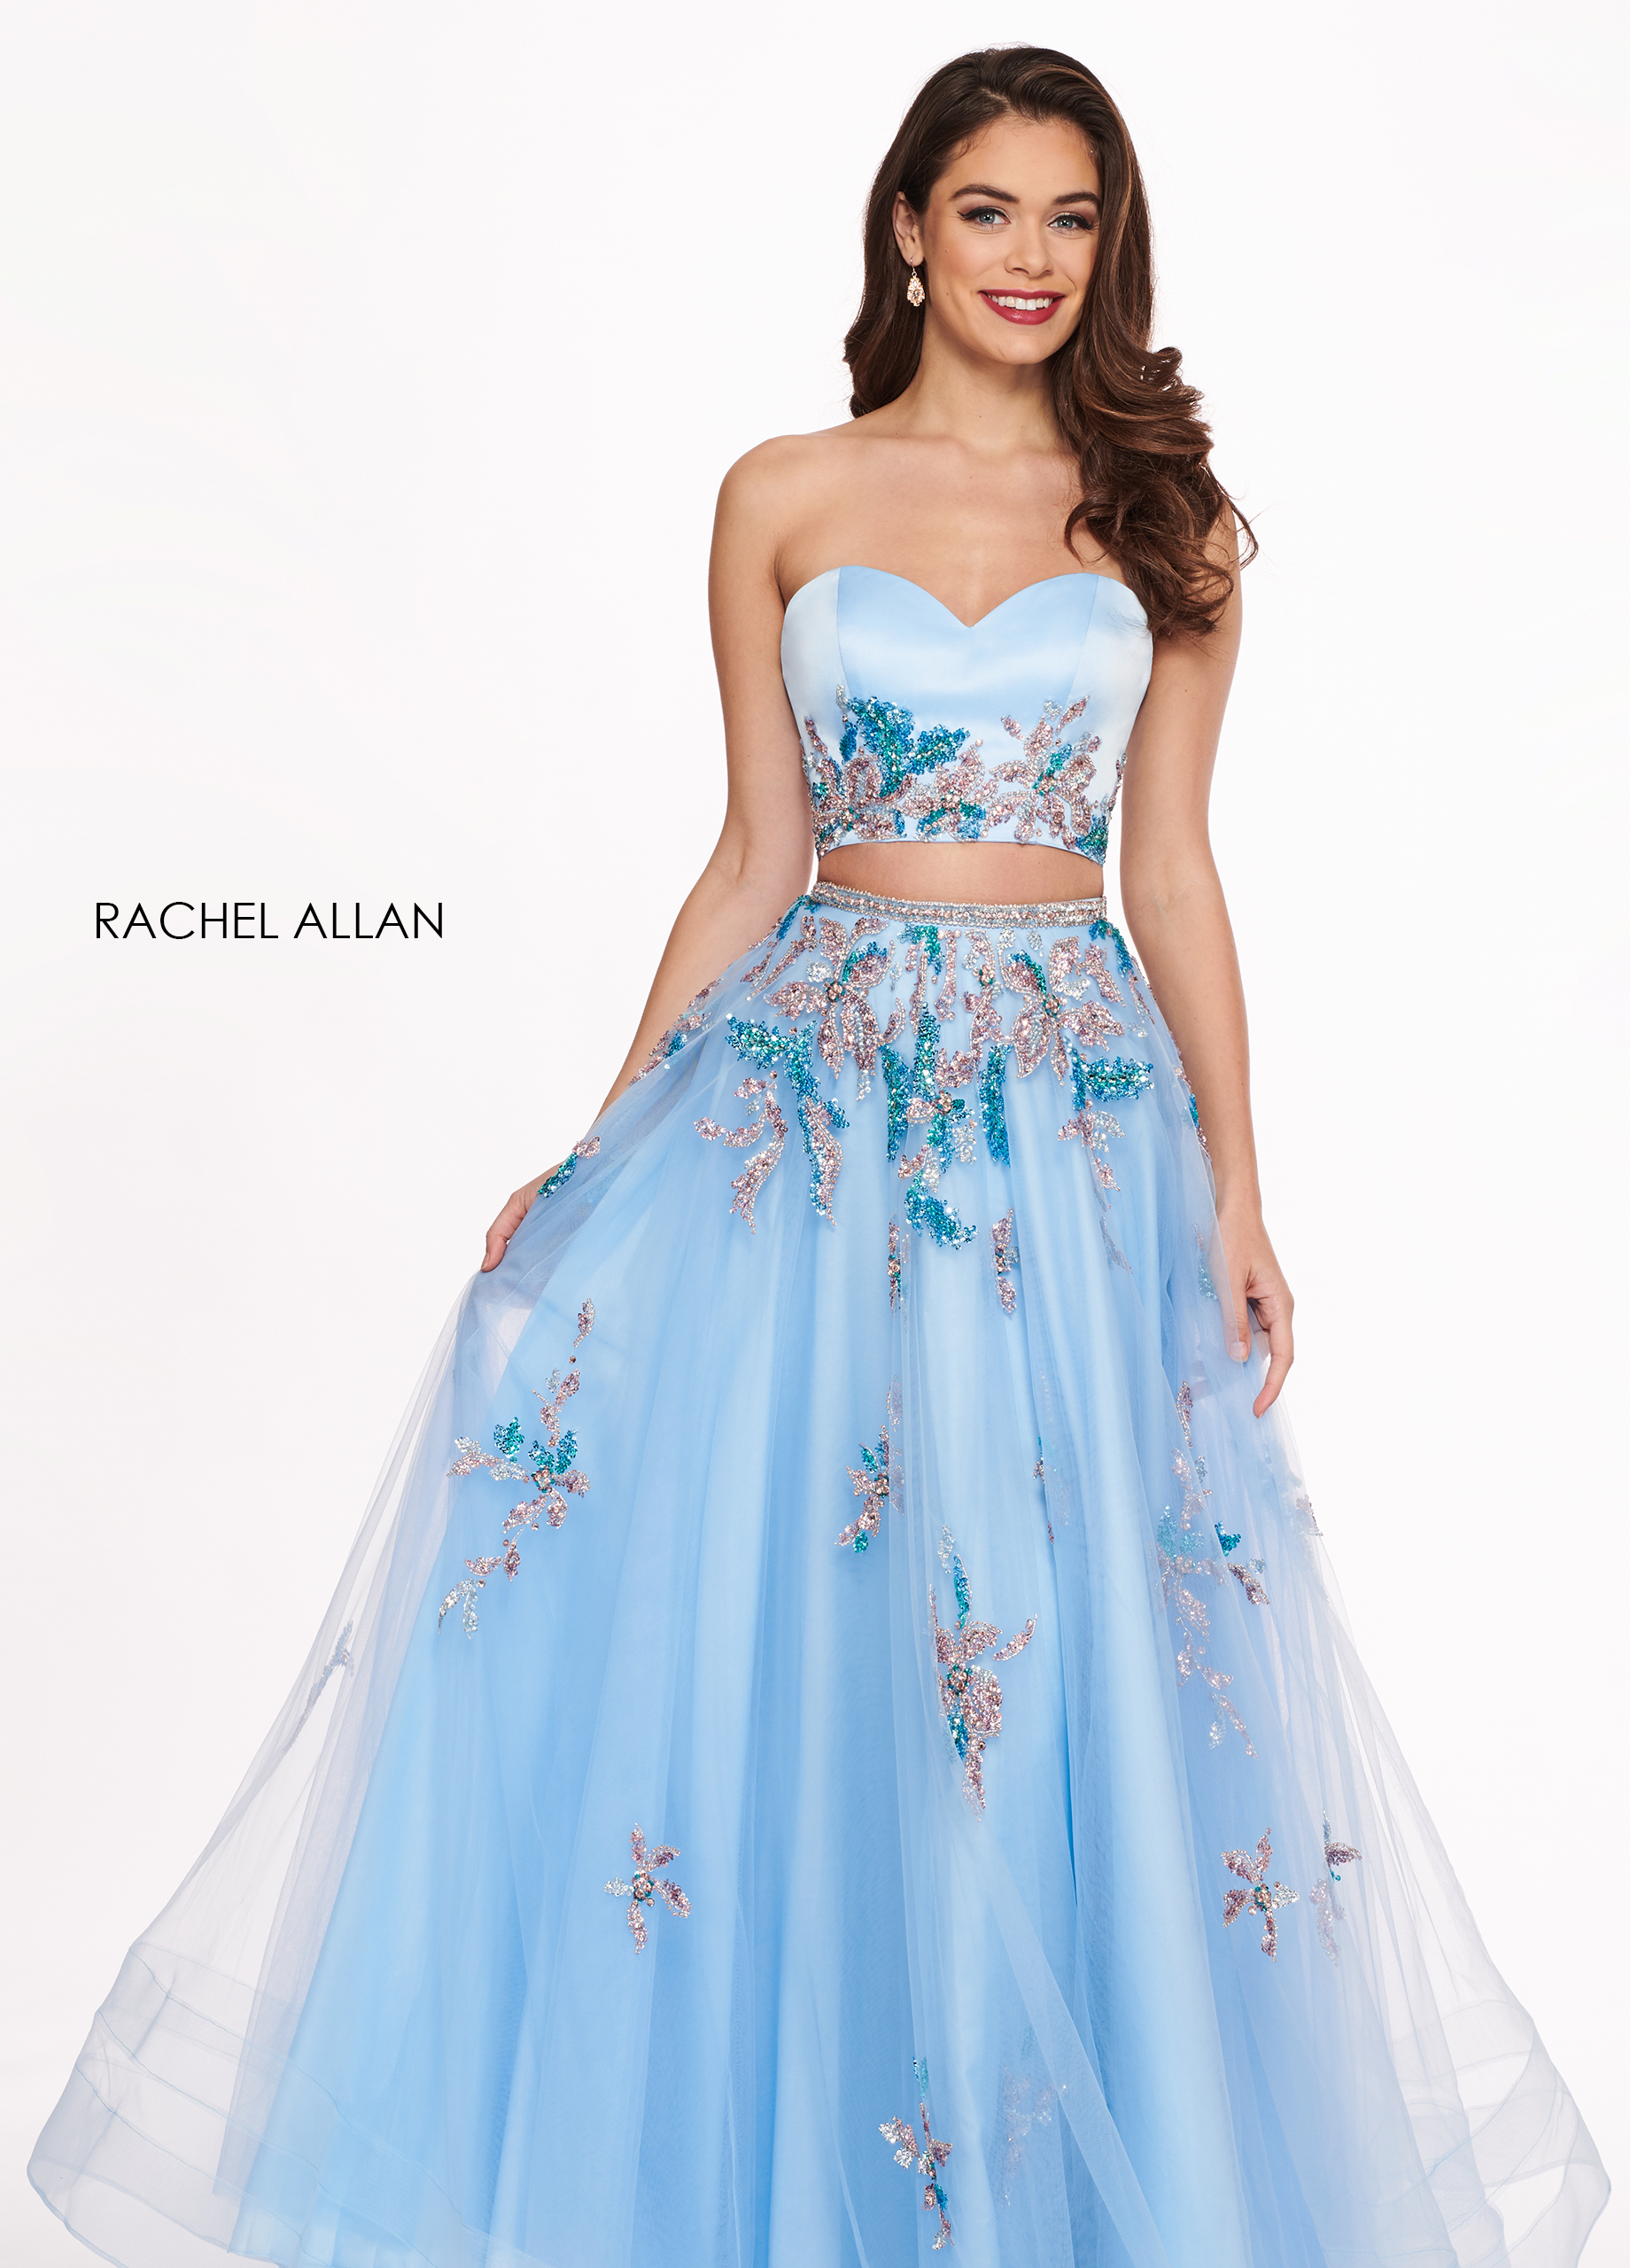 Strapless Two-Piece Prom Dresses in Blue Color